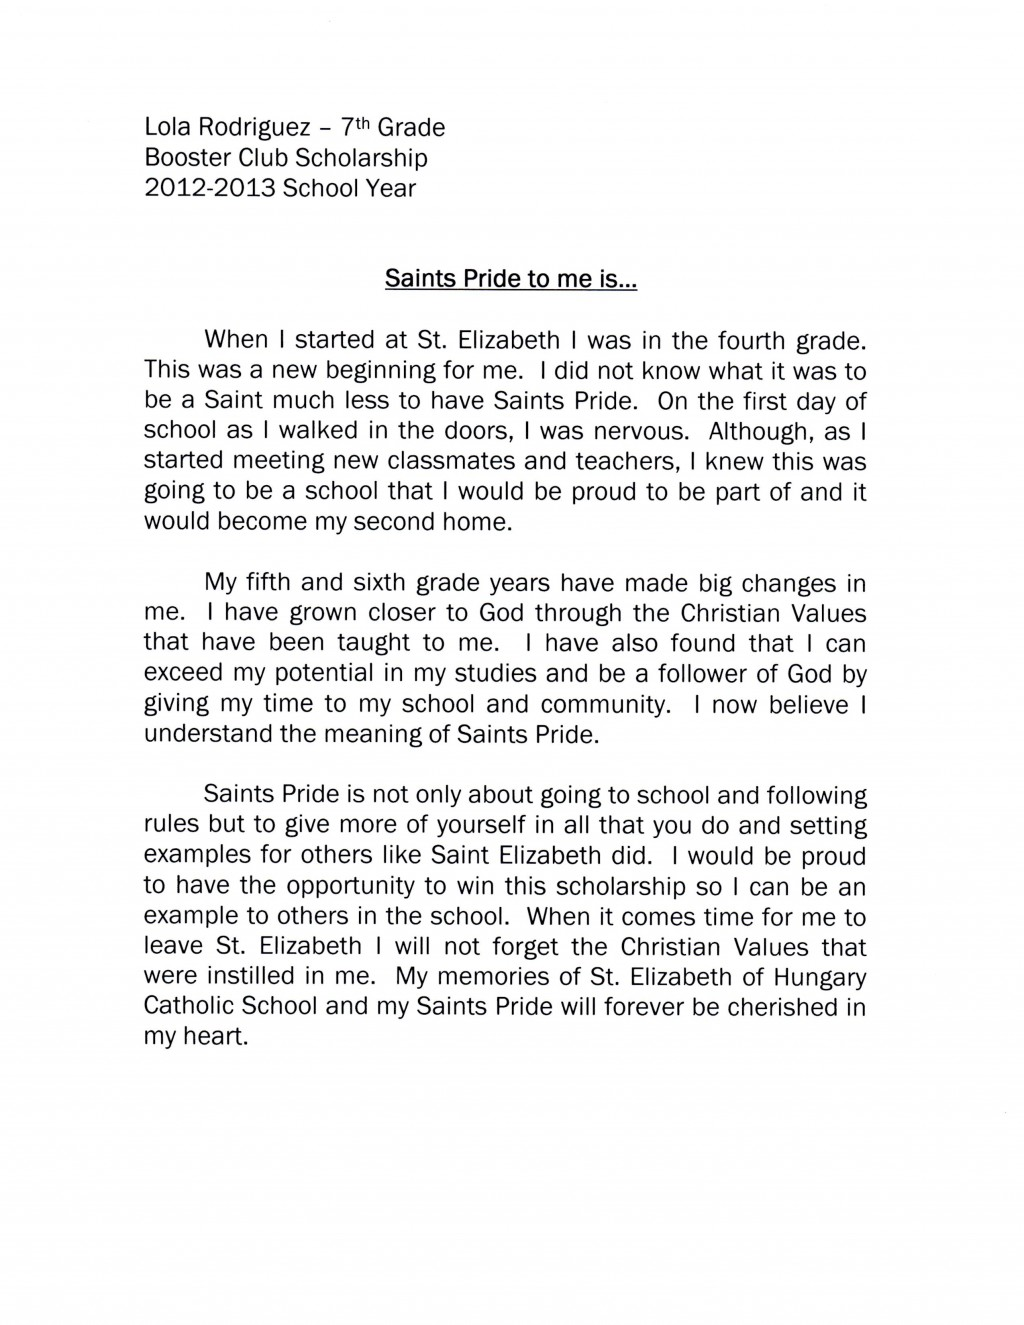 002 Why I Need Scholarship Essay Lola Rodriguez Impressive A Should Receive Want To Be Teacher Large